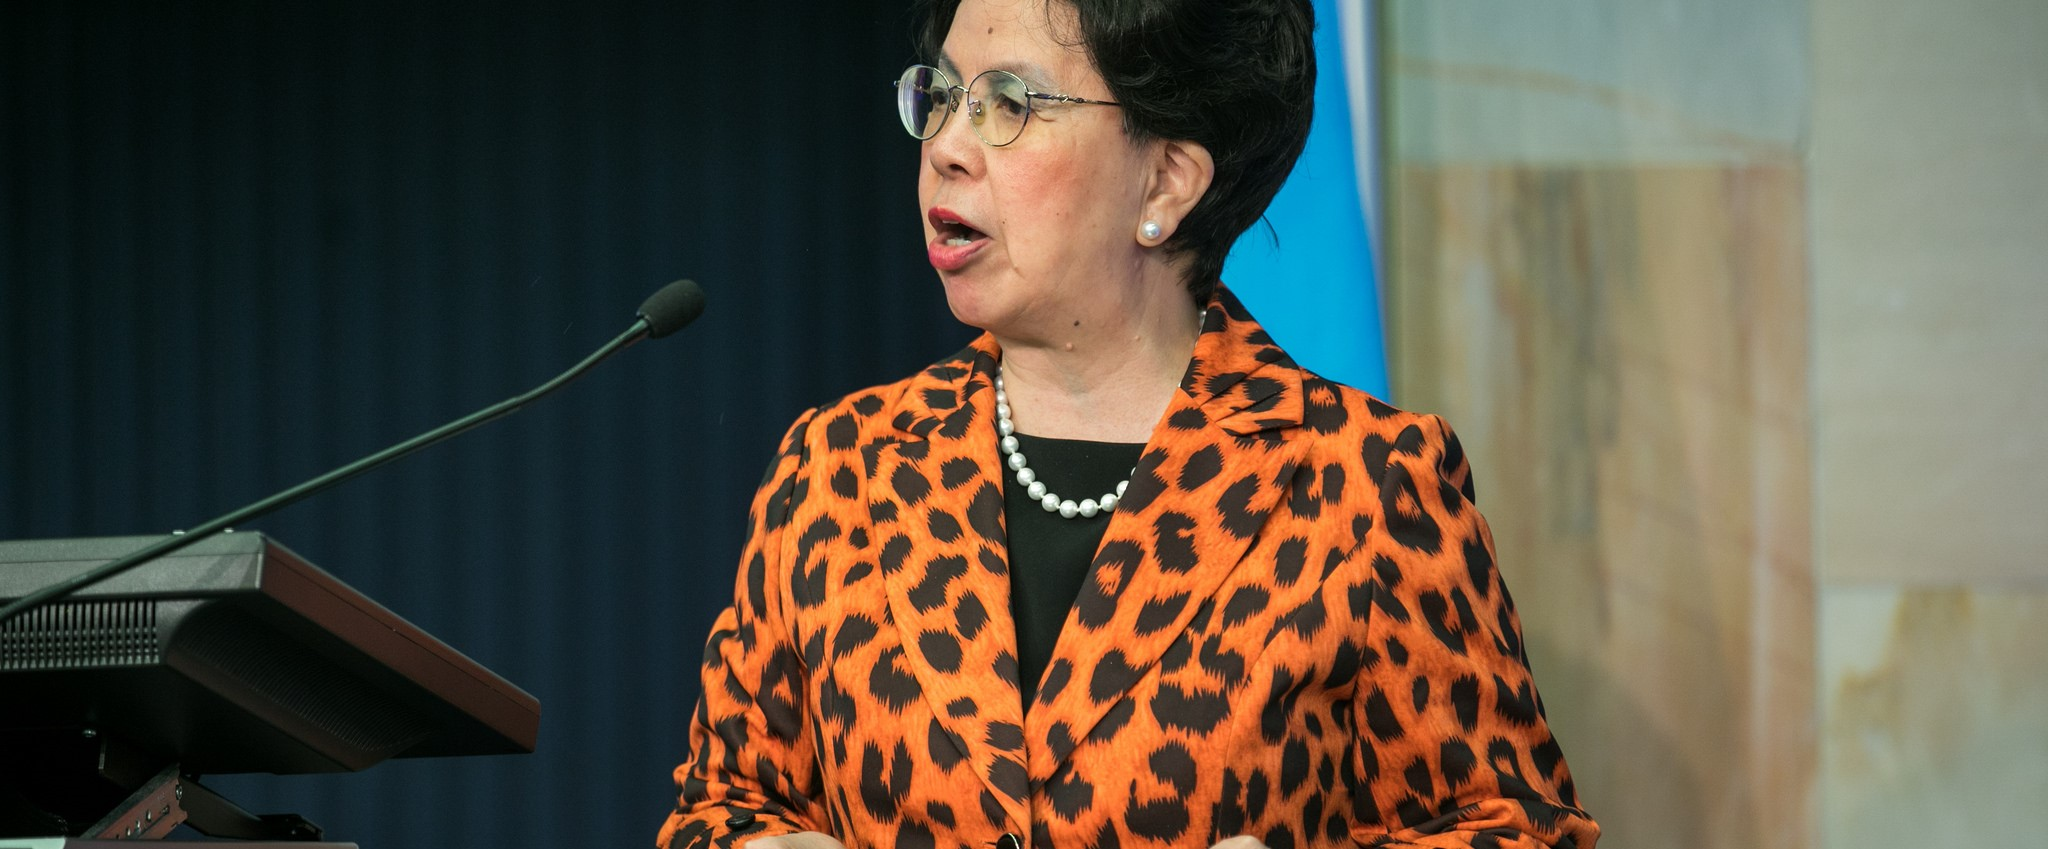 Outgoing WHO Director-General Margaret Chan speaking at a conference at the International Telecommunication Union in Switzerland, June 2017 (Photo: Flickr/ITU)